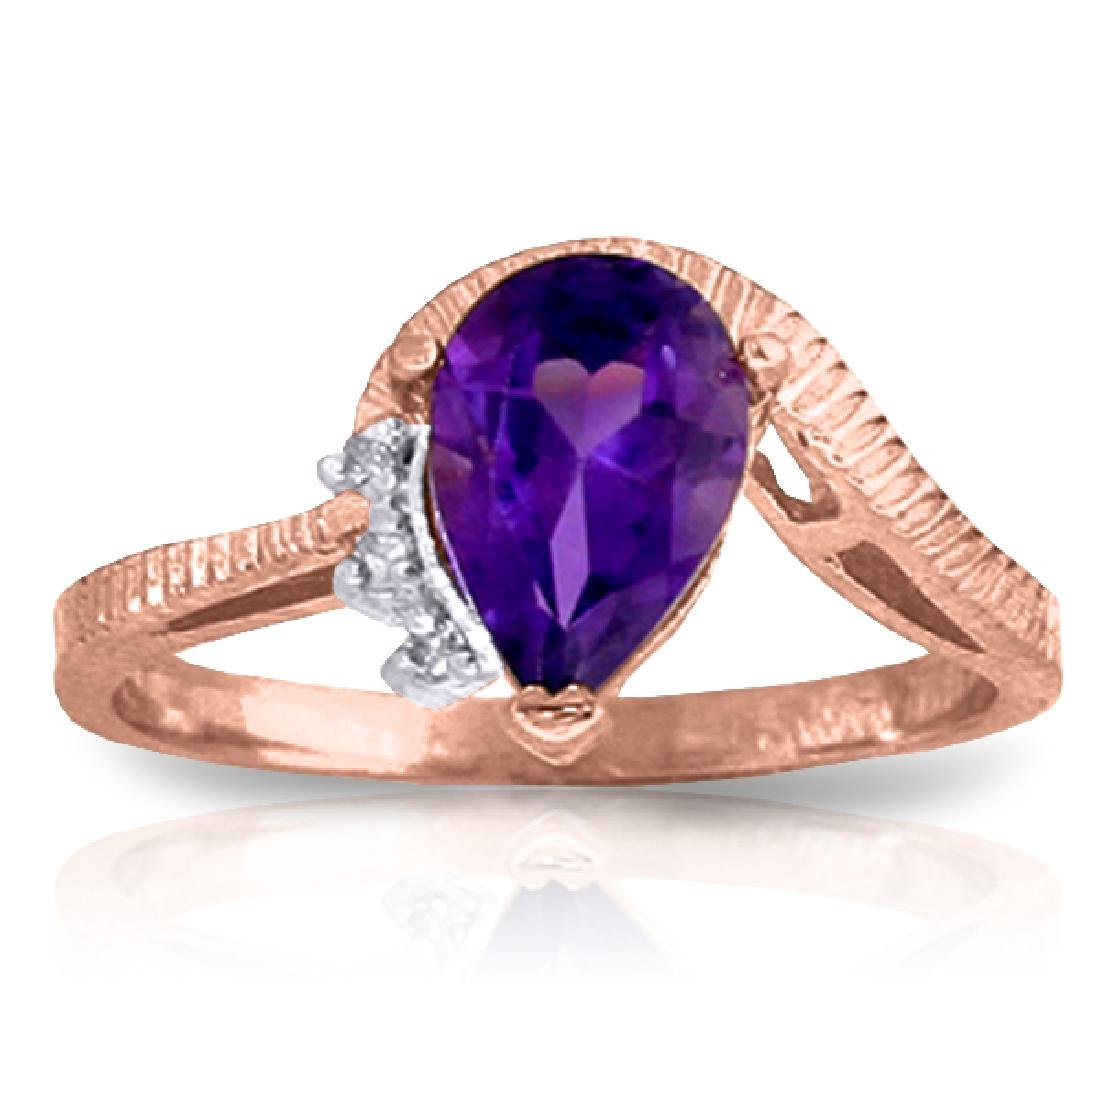 Genuine 1.52 ctw Amethyst & Diamond Ring Jewelry 14KT